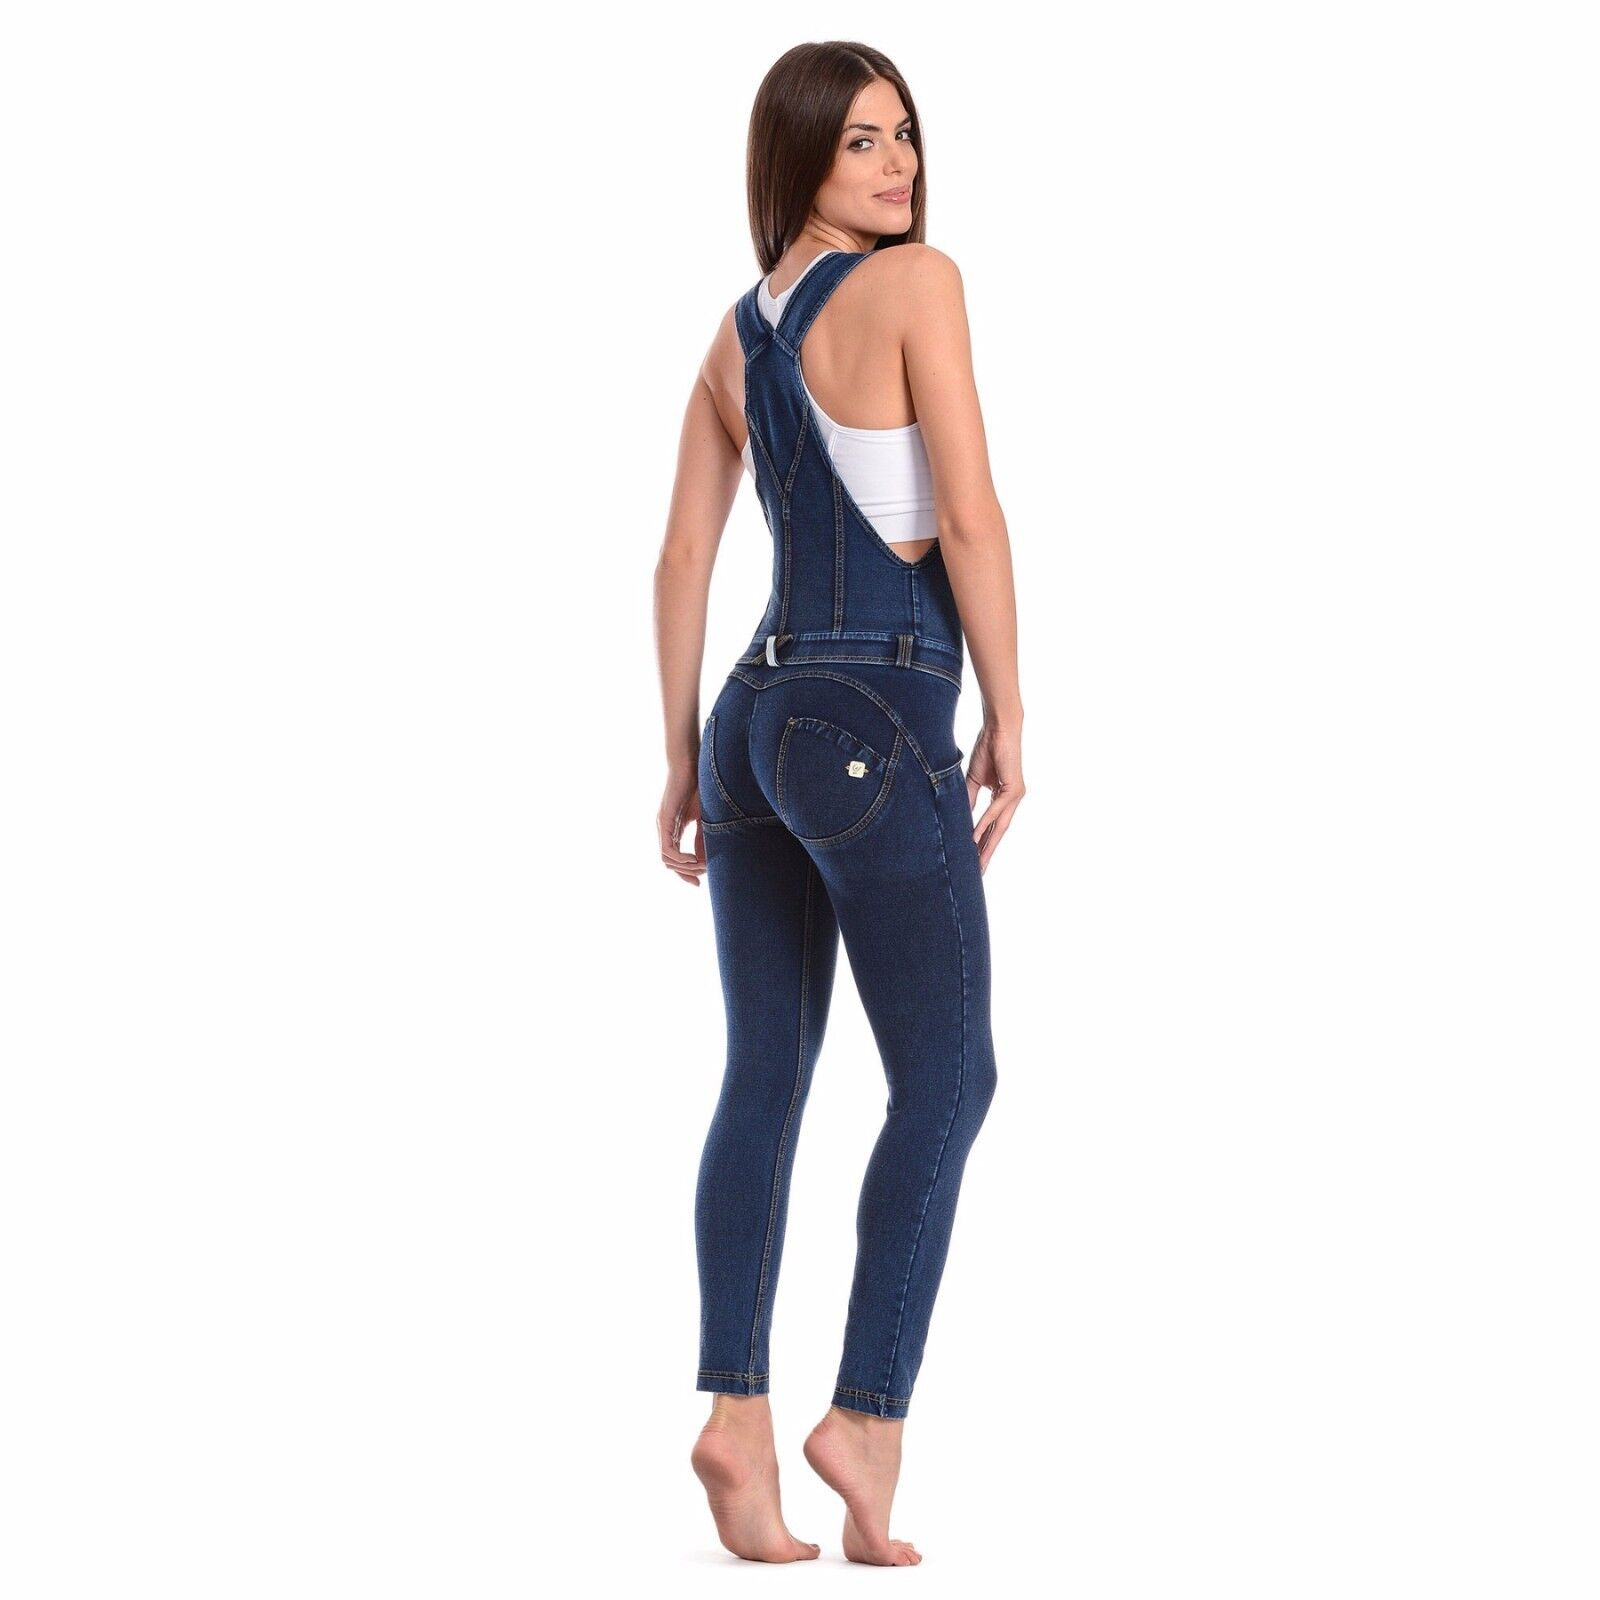 SCONTO 10% FREDDY WR.UP WRUP16C002 SALOPETTE XXS XS S M L XL TUTA JEANS PUSH UP